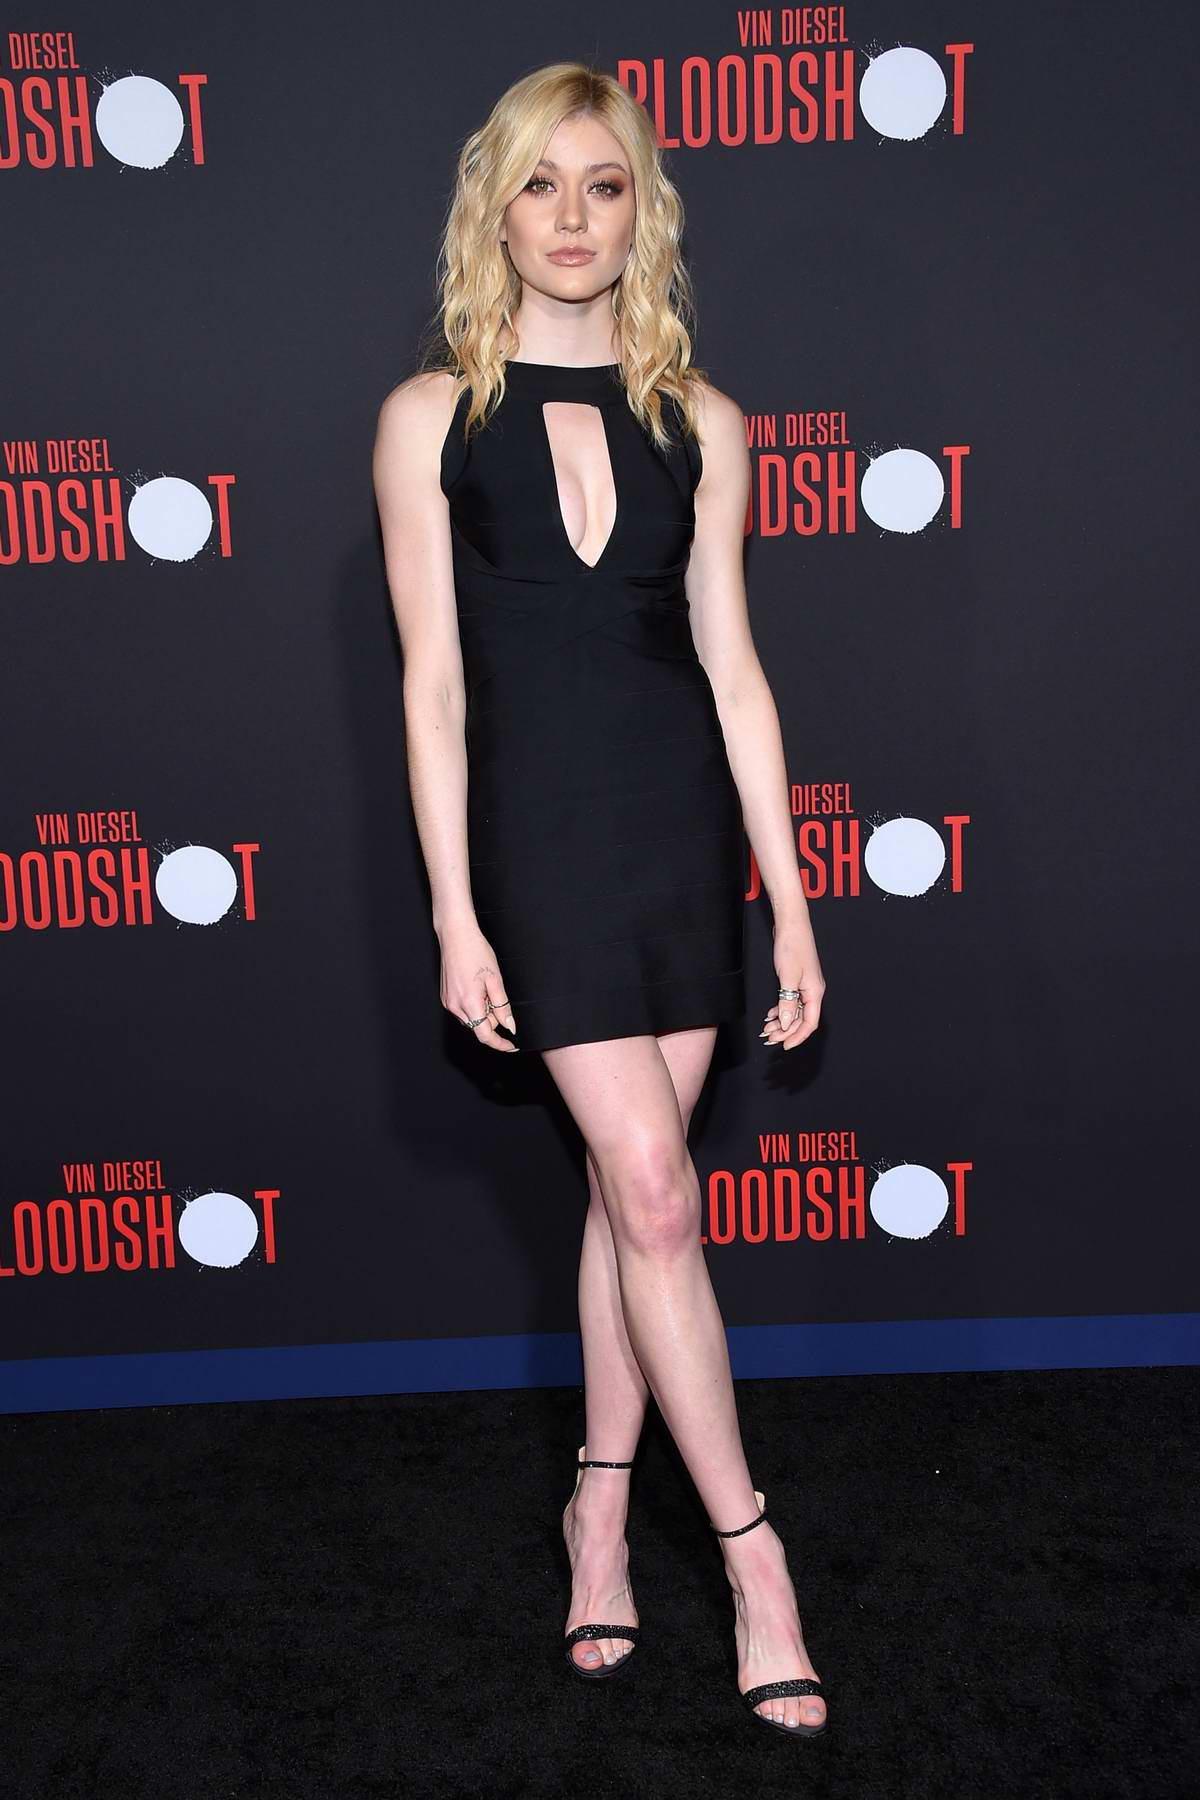 Katherine McNamara attends the Premiere of 'Bloodshot' at the Regency Village Theatre in Westwood, California